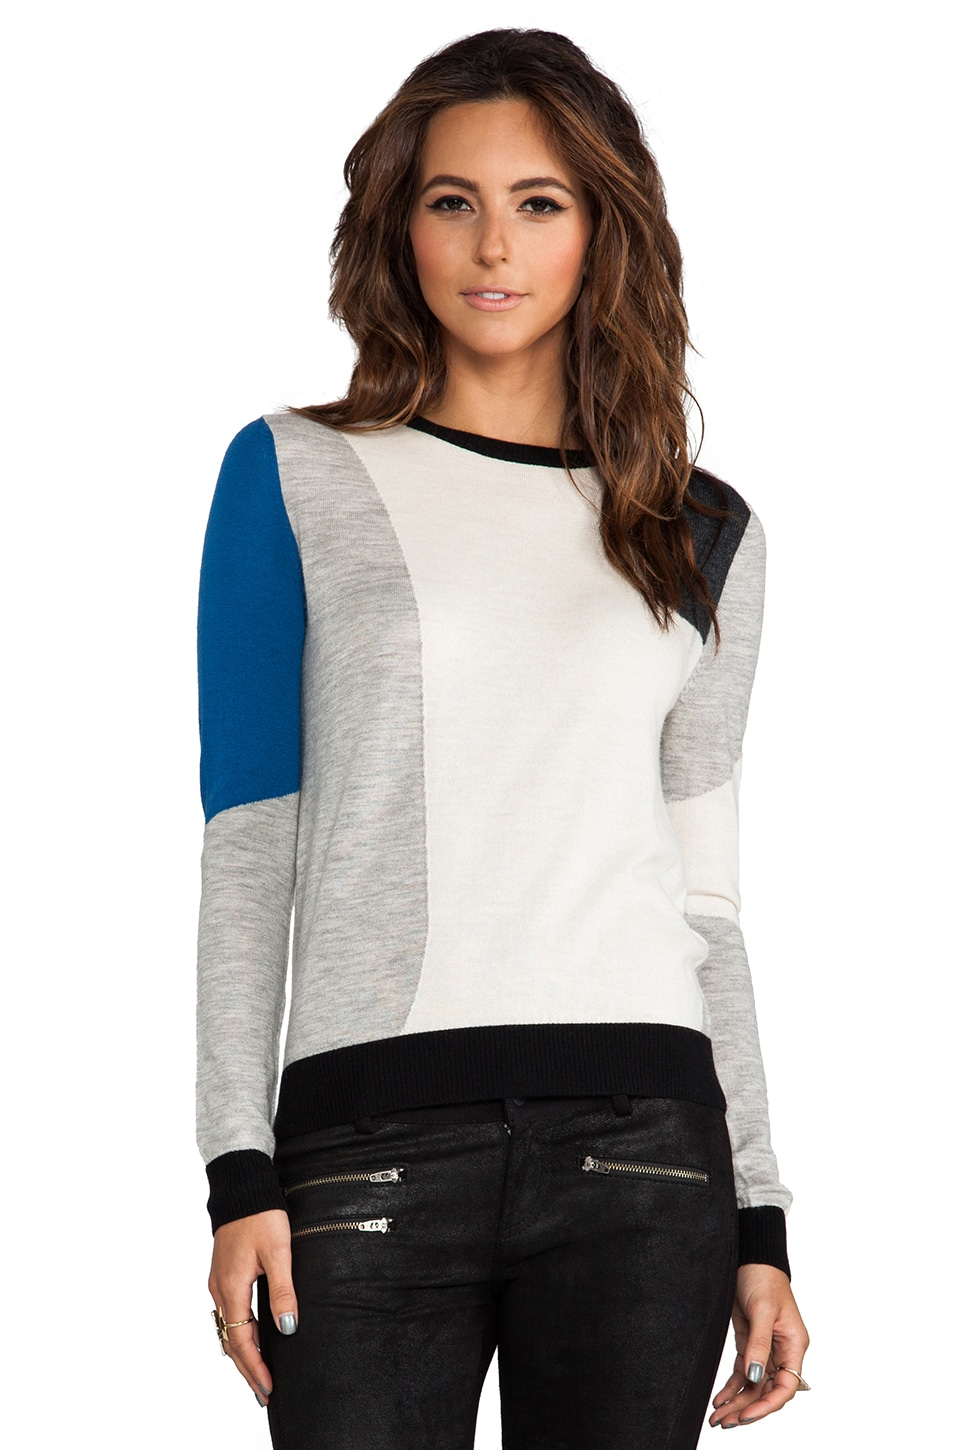 SHAE Colorblock Jacquard Pullover in Warm White Combo